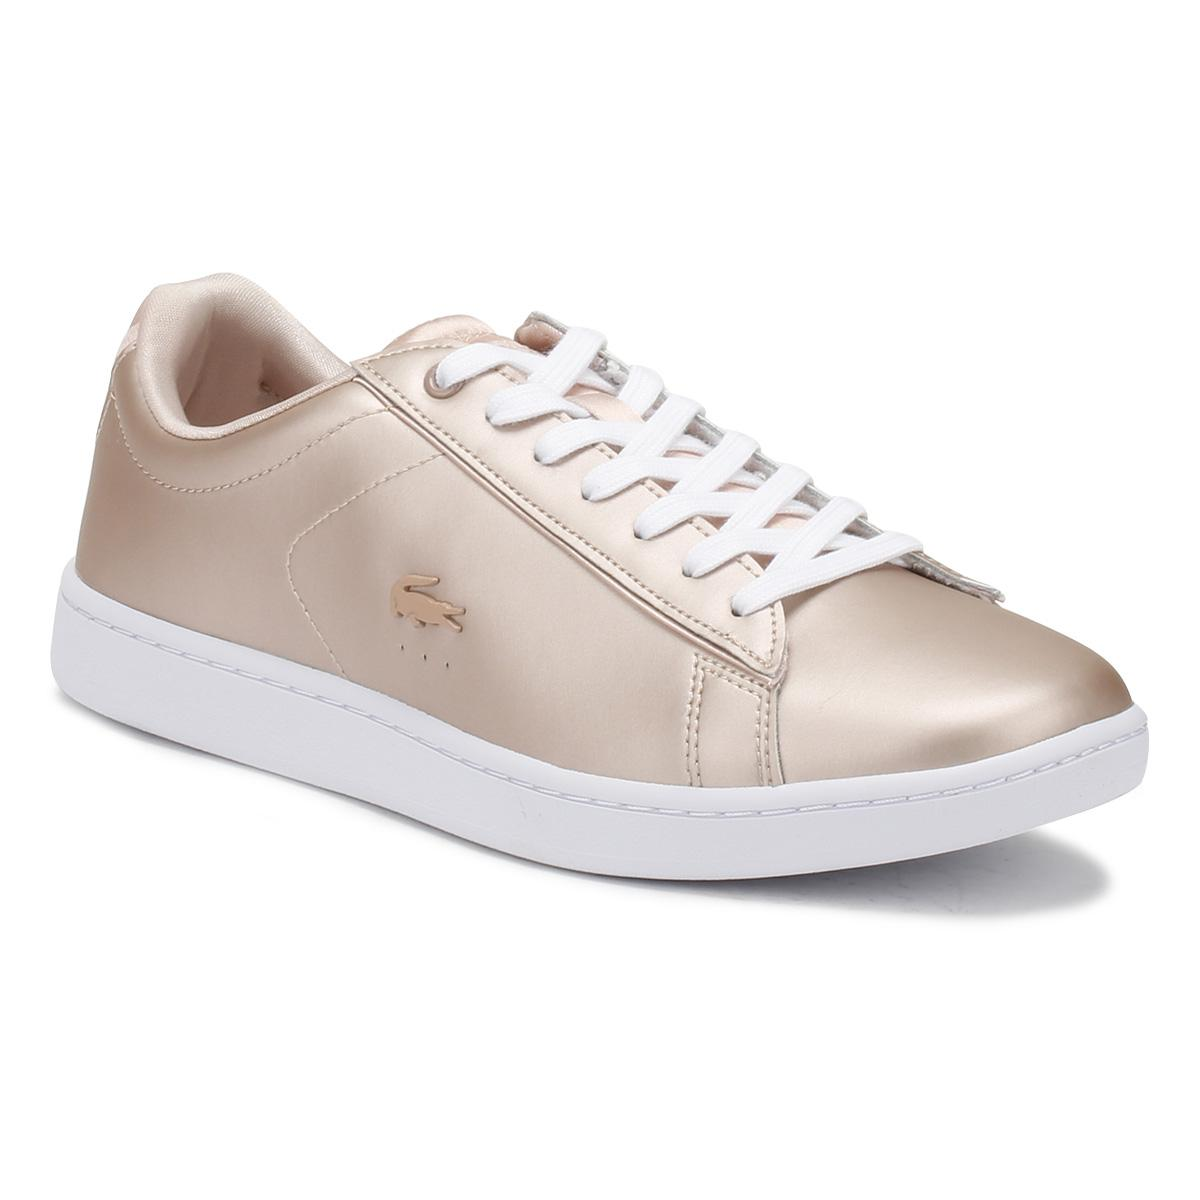 8074b273e5541f Lyst - Lacoste Womens Natural Tan   White Carnaby Evo 118 7 Trainers ...